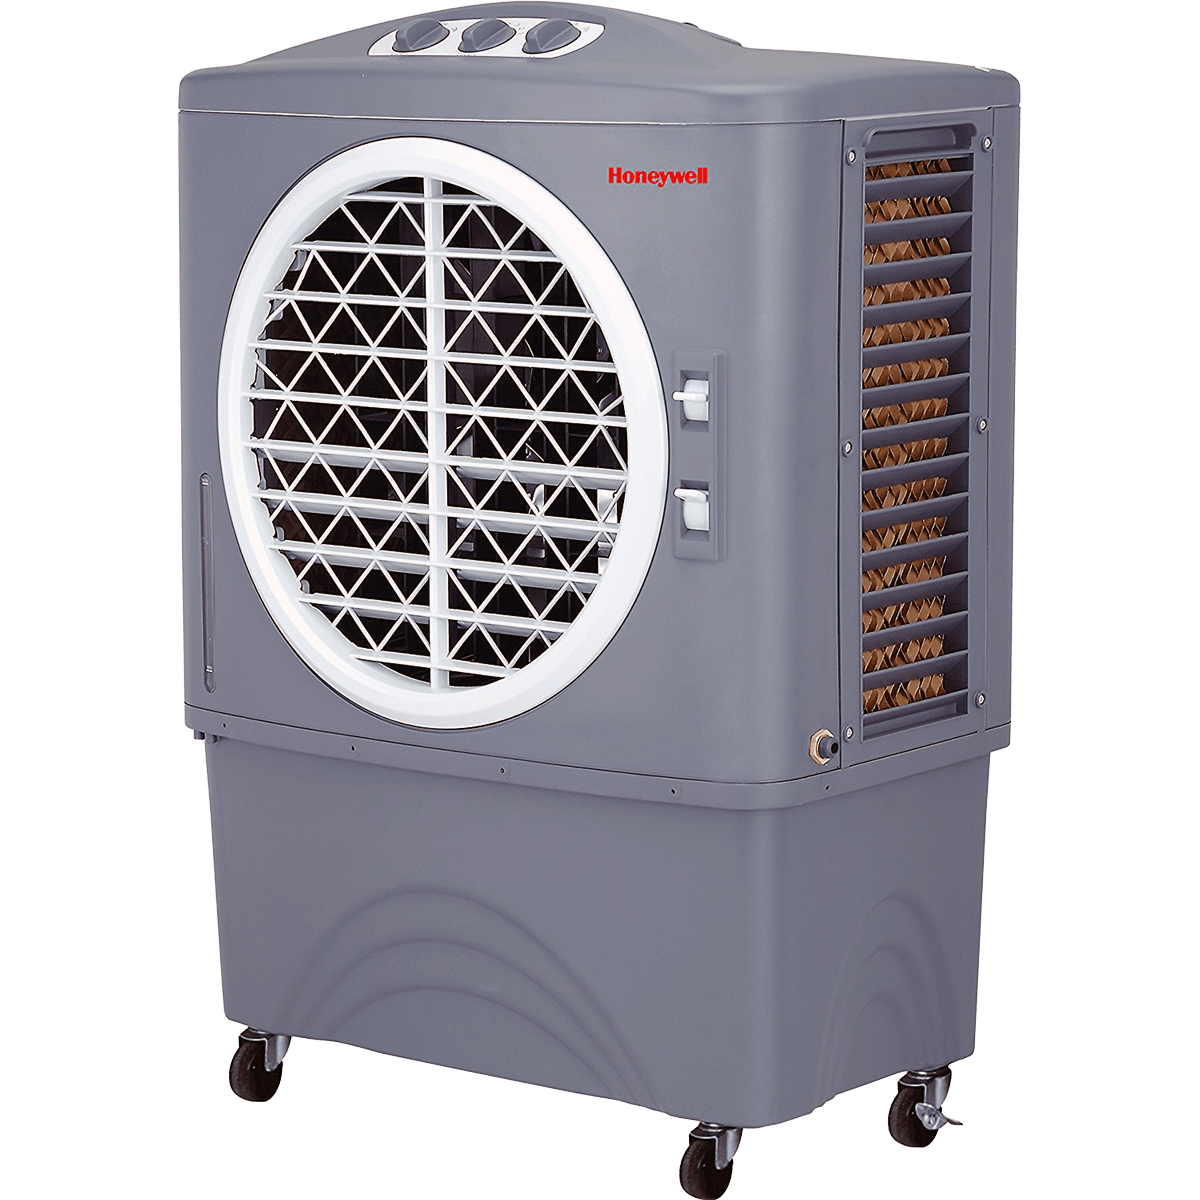 Honeywell 100 Pint Evaporative Cooler Model: CO48PM